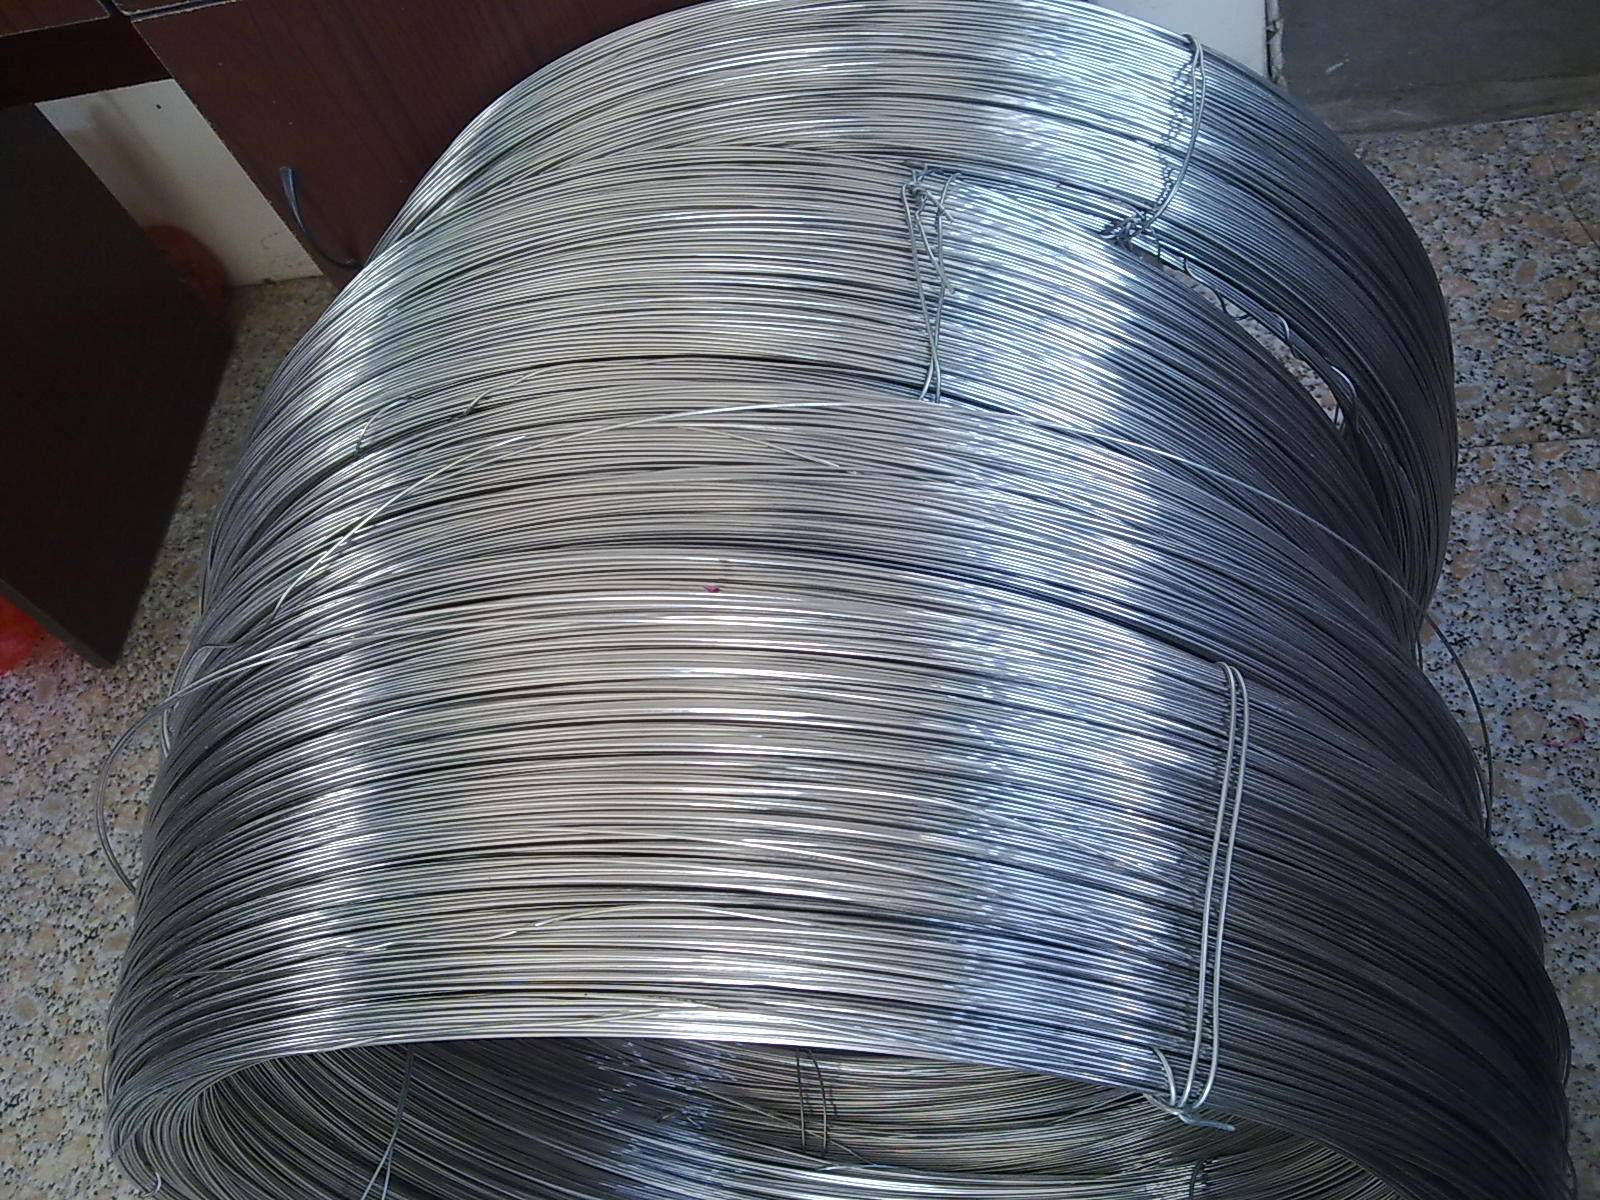 1.2mm stainless steel spring wire in stock